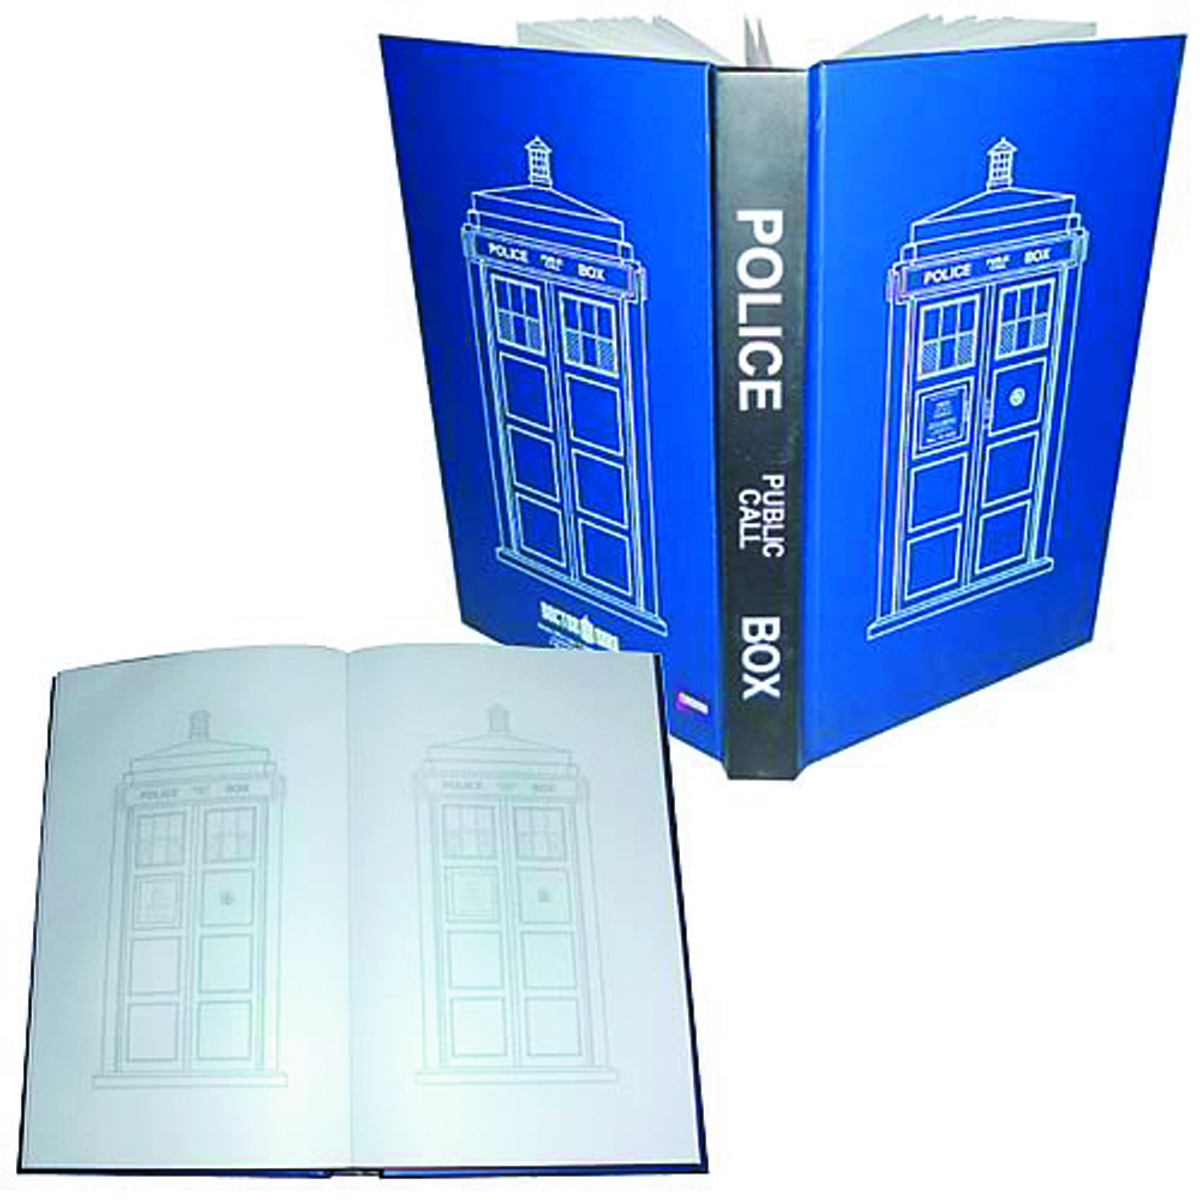 DOCTOR WHO TARDIS POLICE CALL BOX JOURNAL